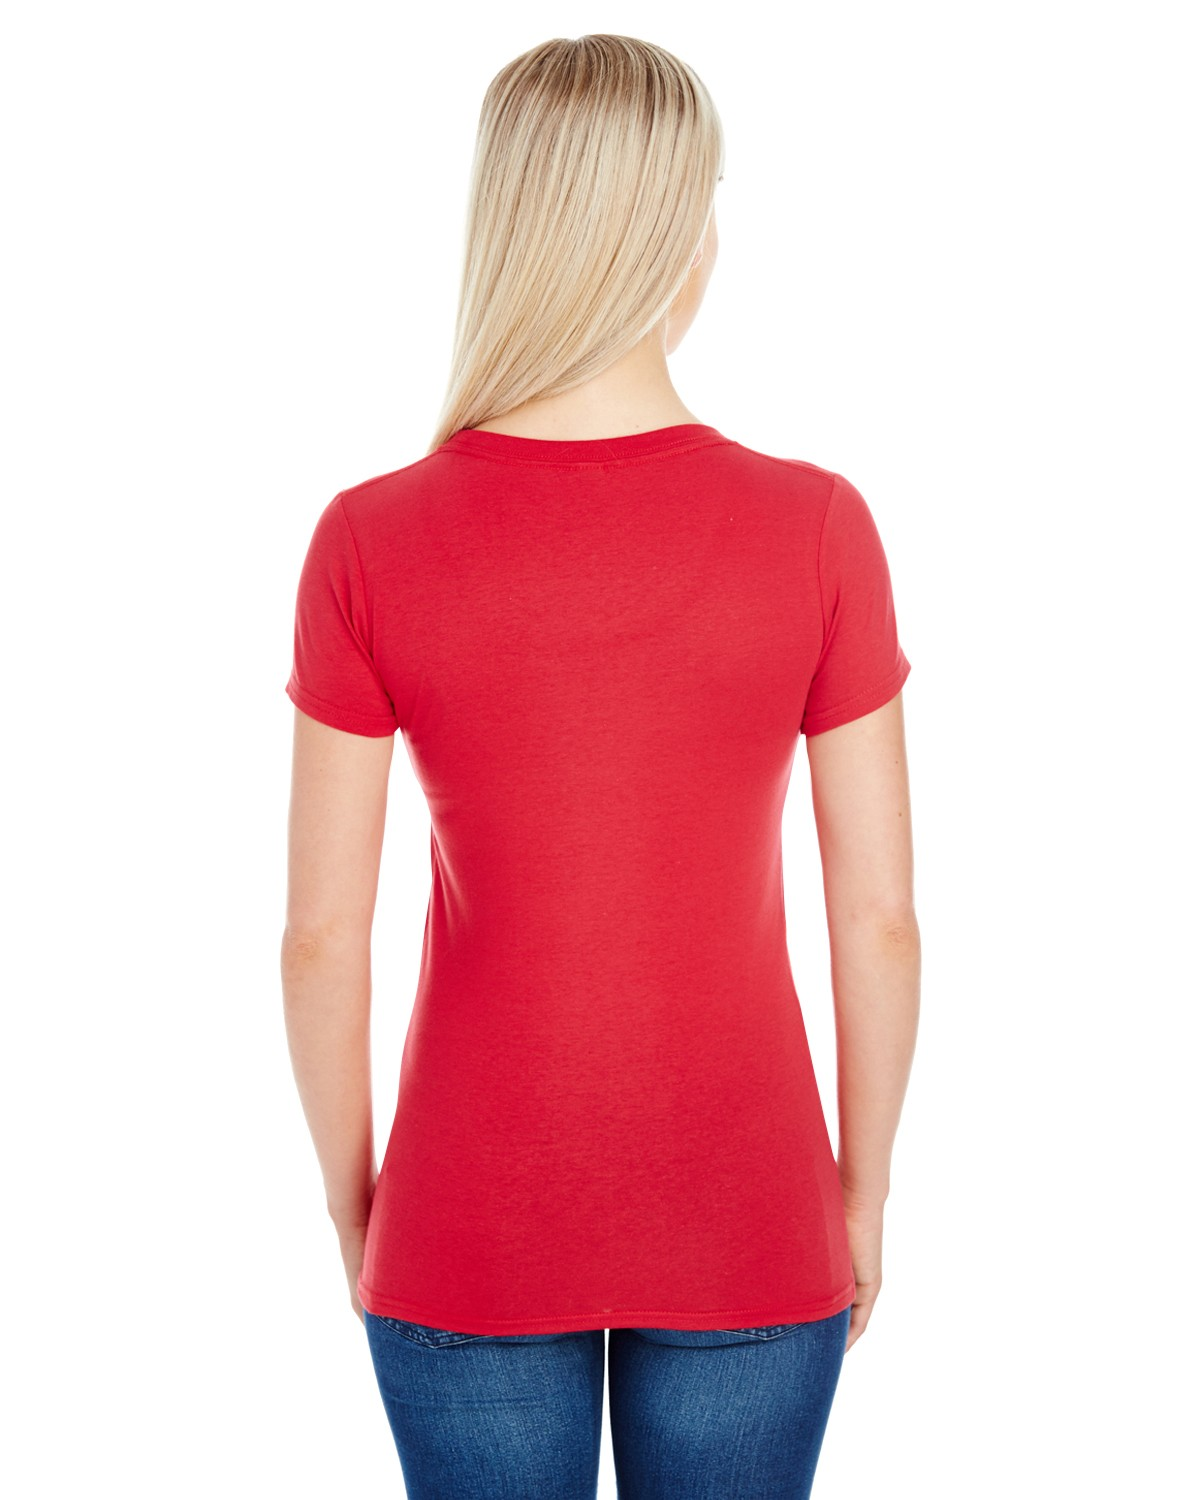 220S Threadfast Apparel ACTIVE RED